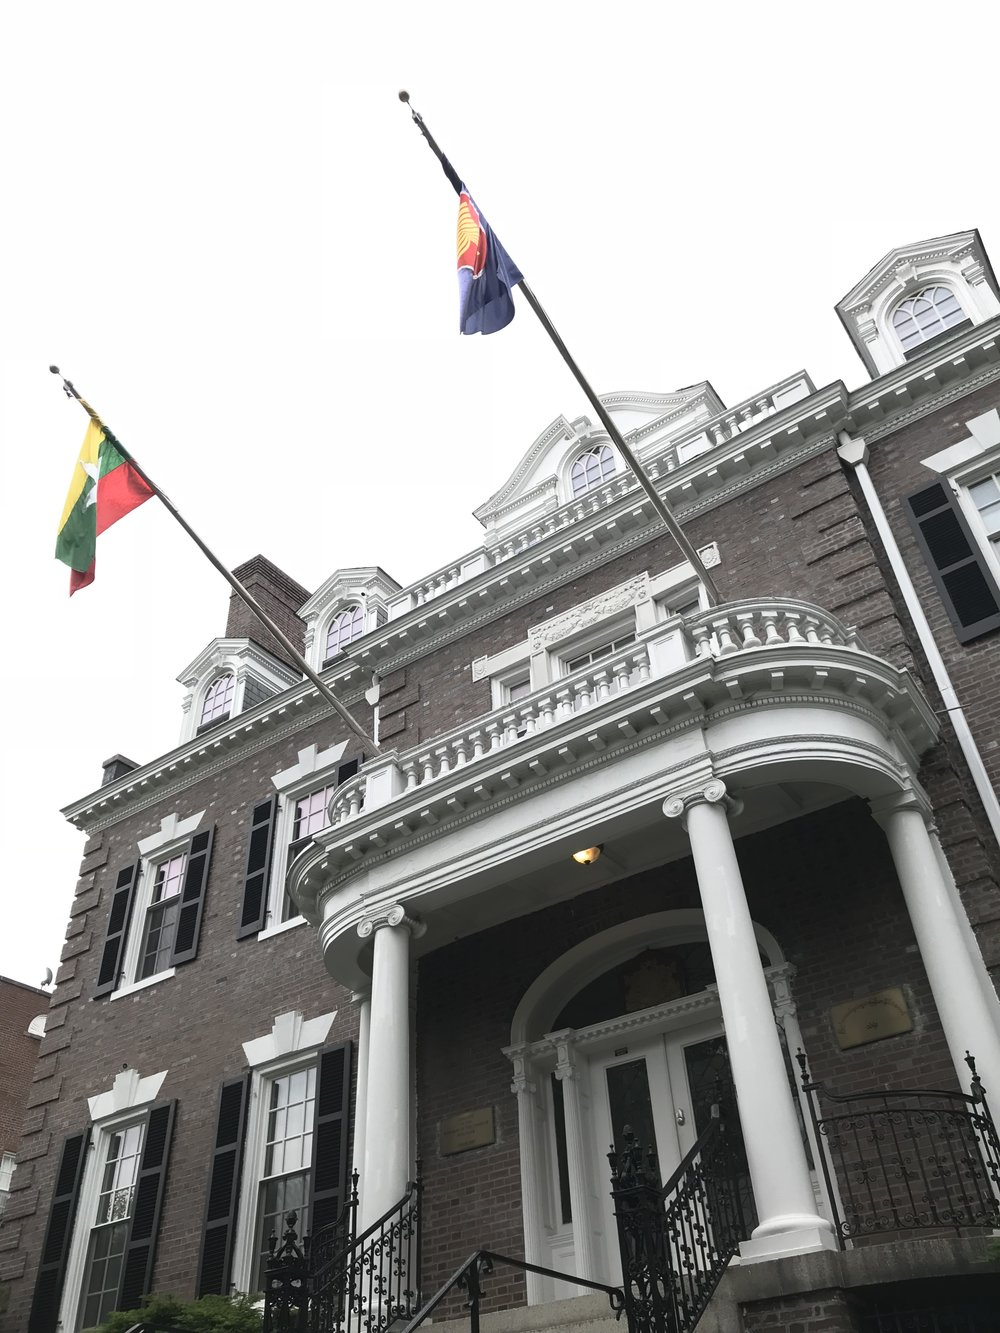 The Embassy of Myanmar.